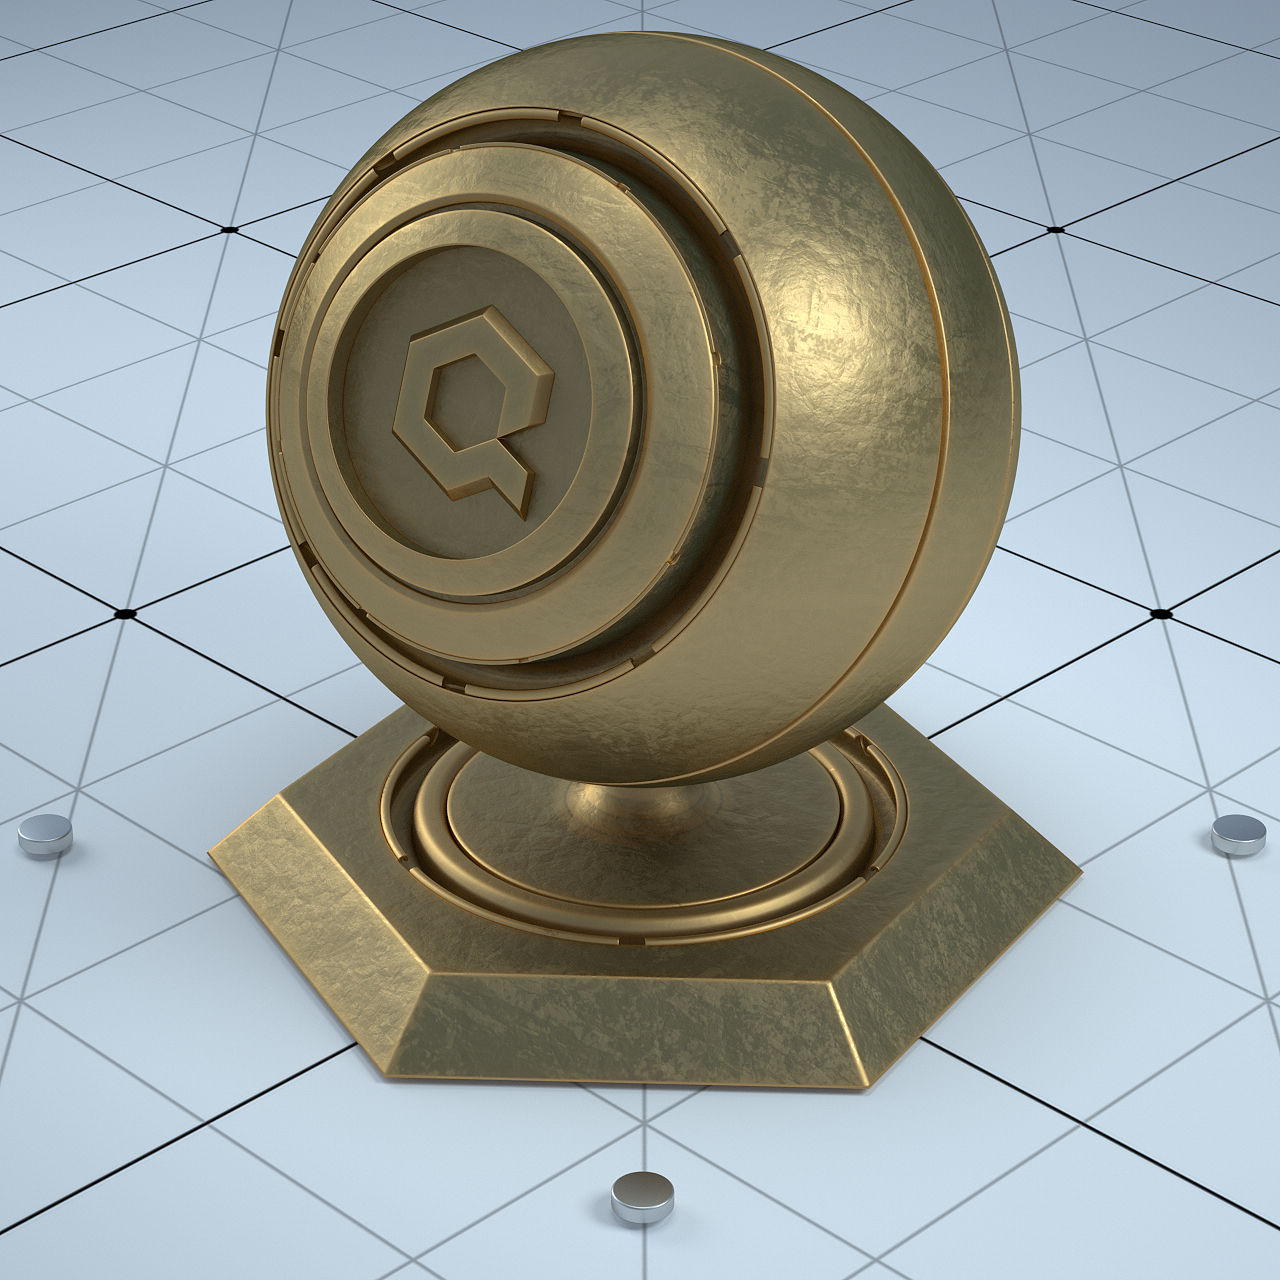 Free Download a Pack of Octane Materials by Mohamed Daoui